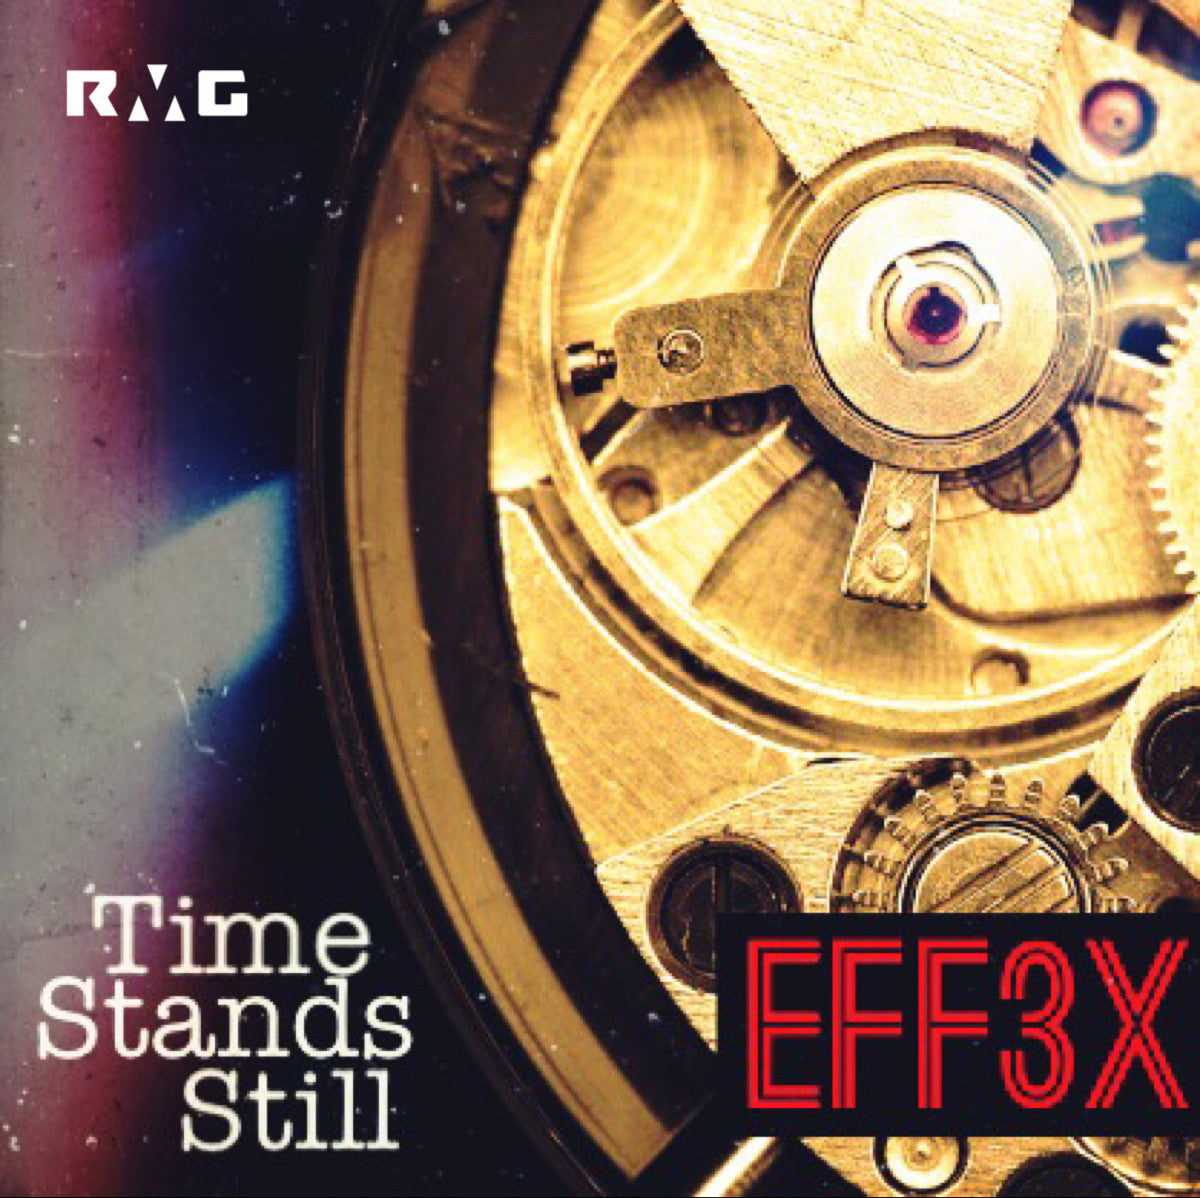 SINGLE - EFF3X - Time Stands Still